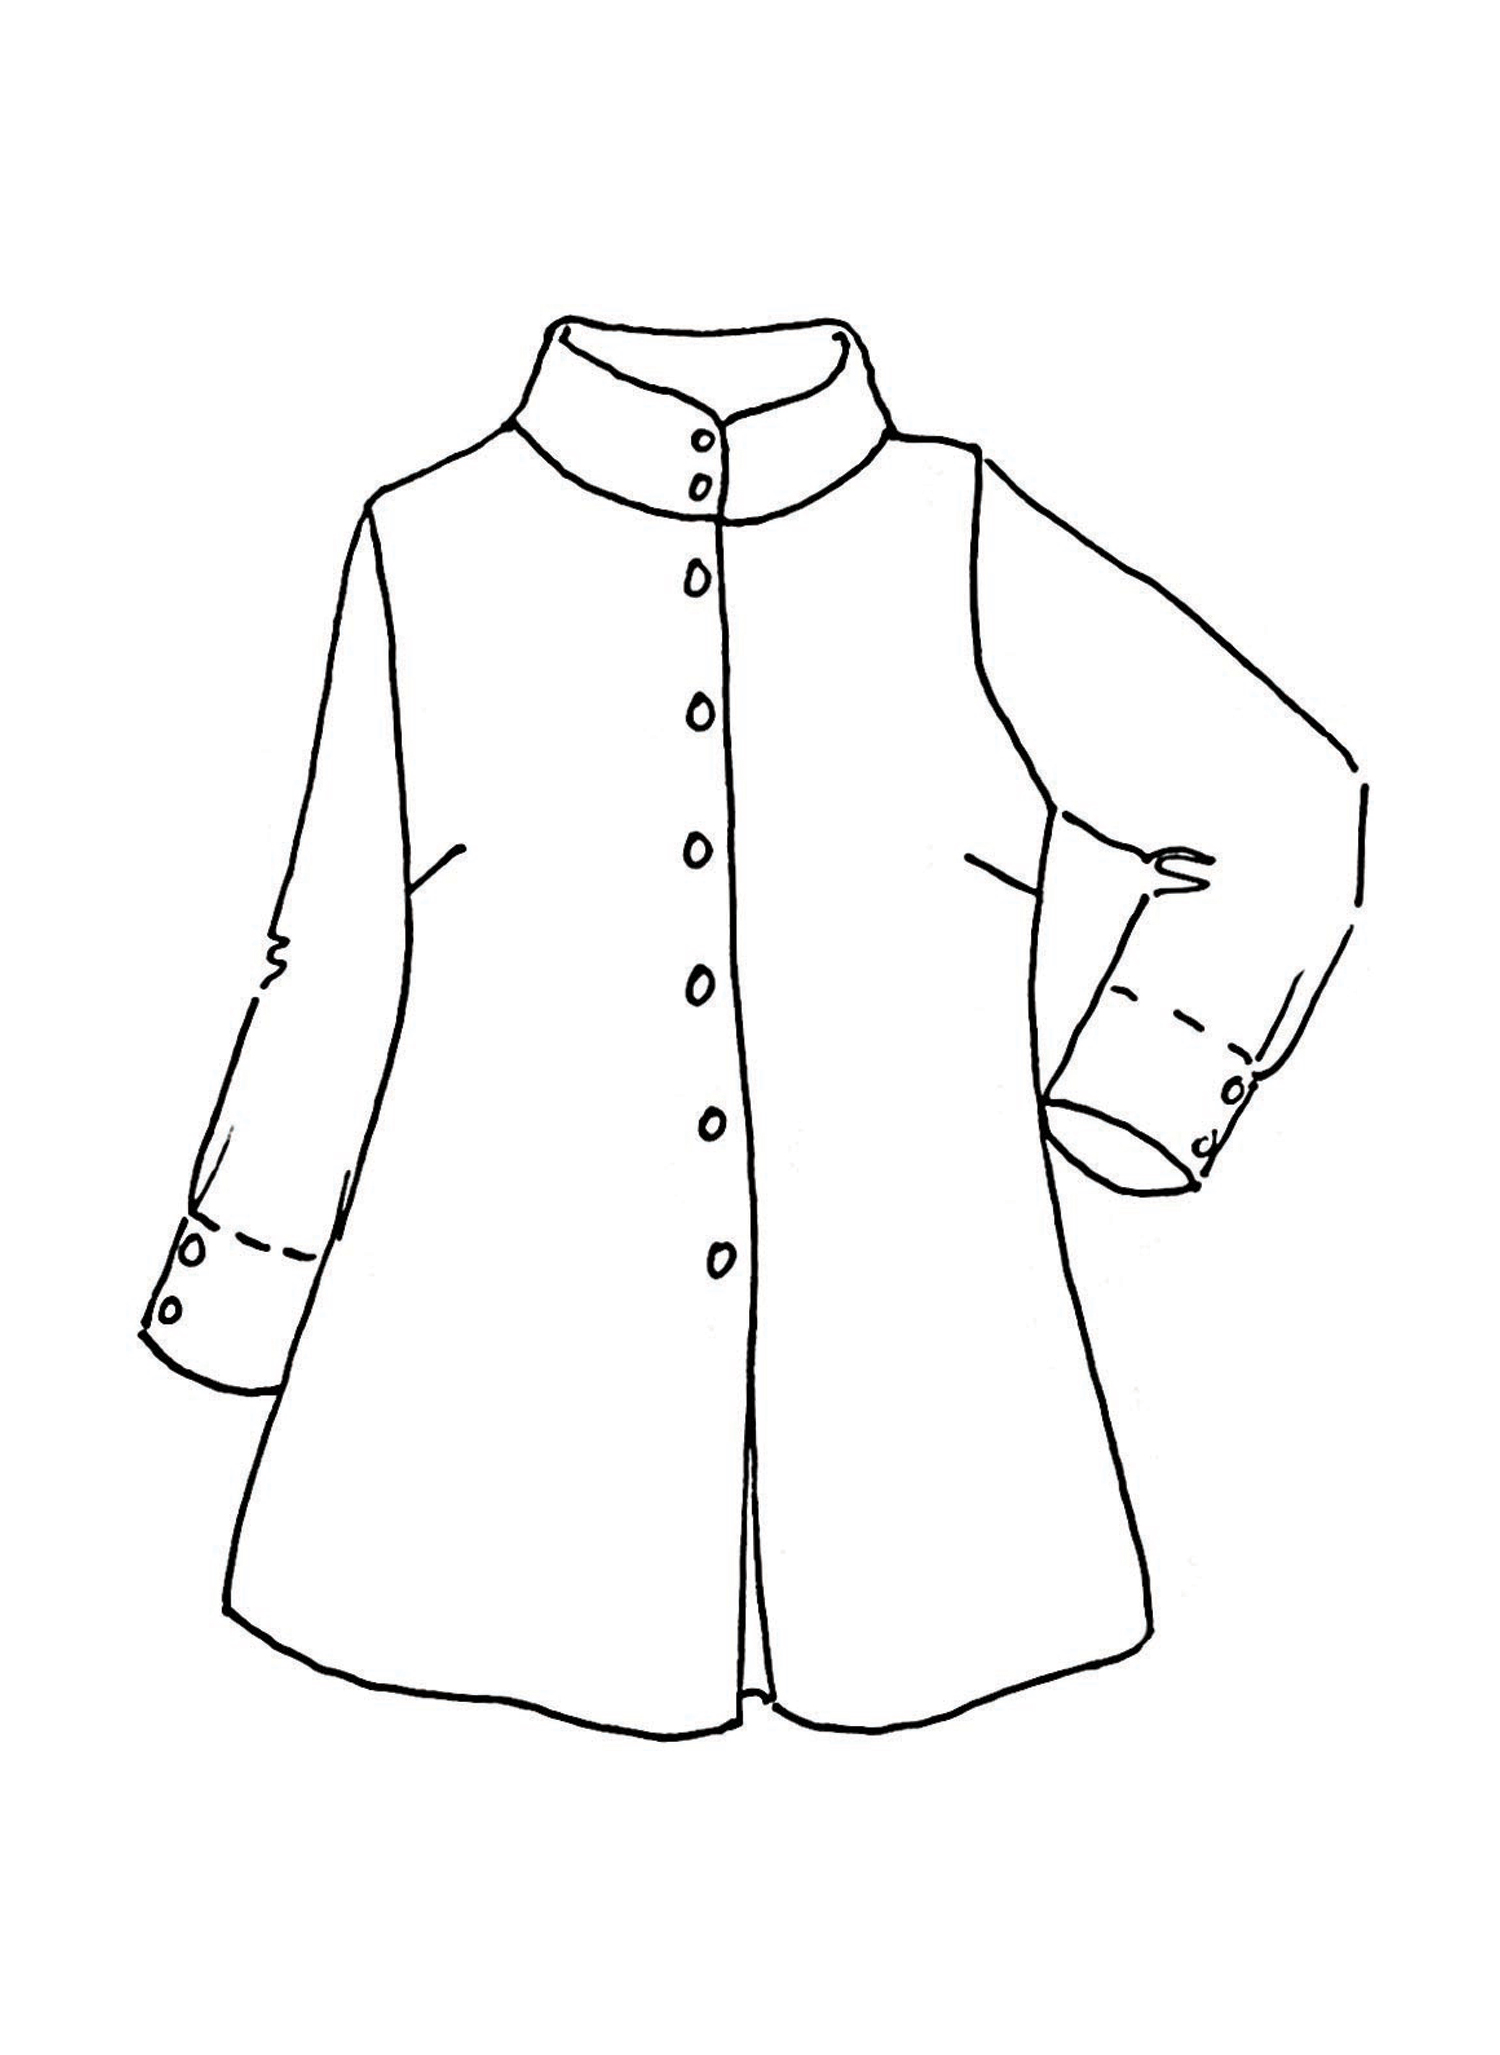 Dame Blouse sketch image